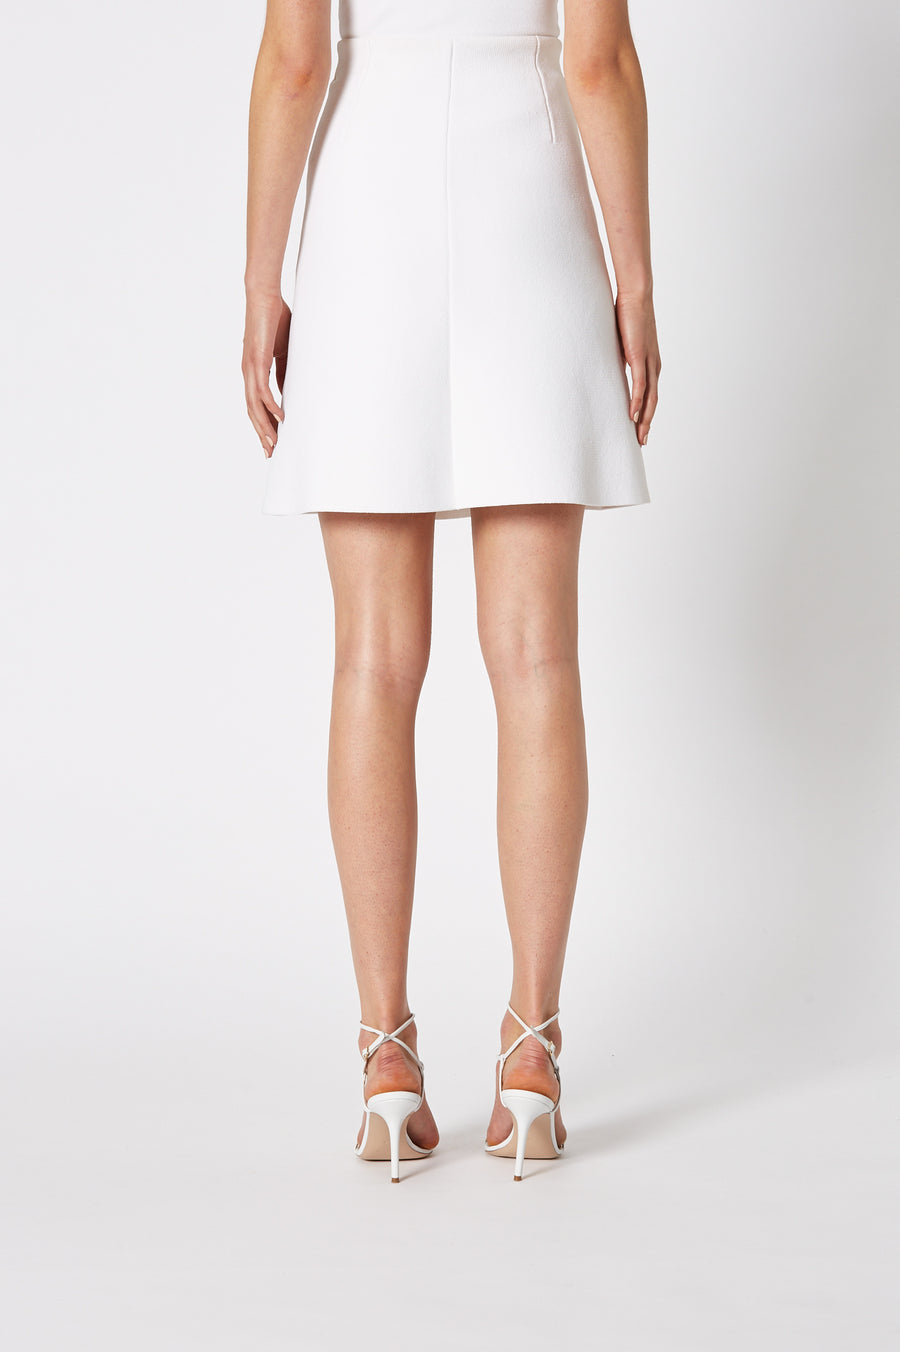 Crepe Knit A-Line Skirt is fitted at the waist, has an A-line body and sits above the knee, color white